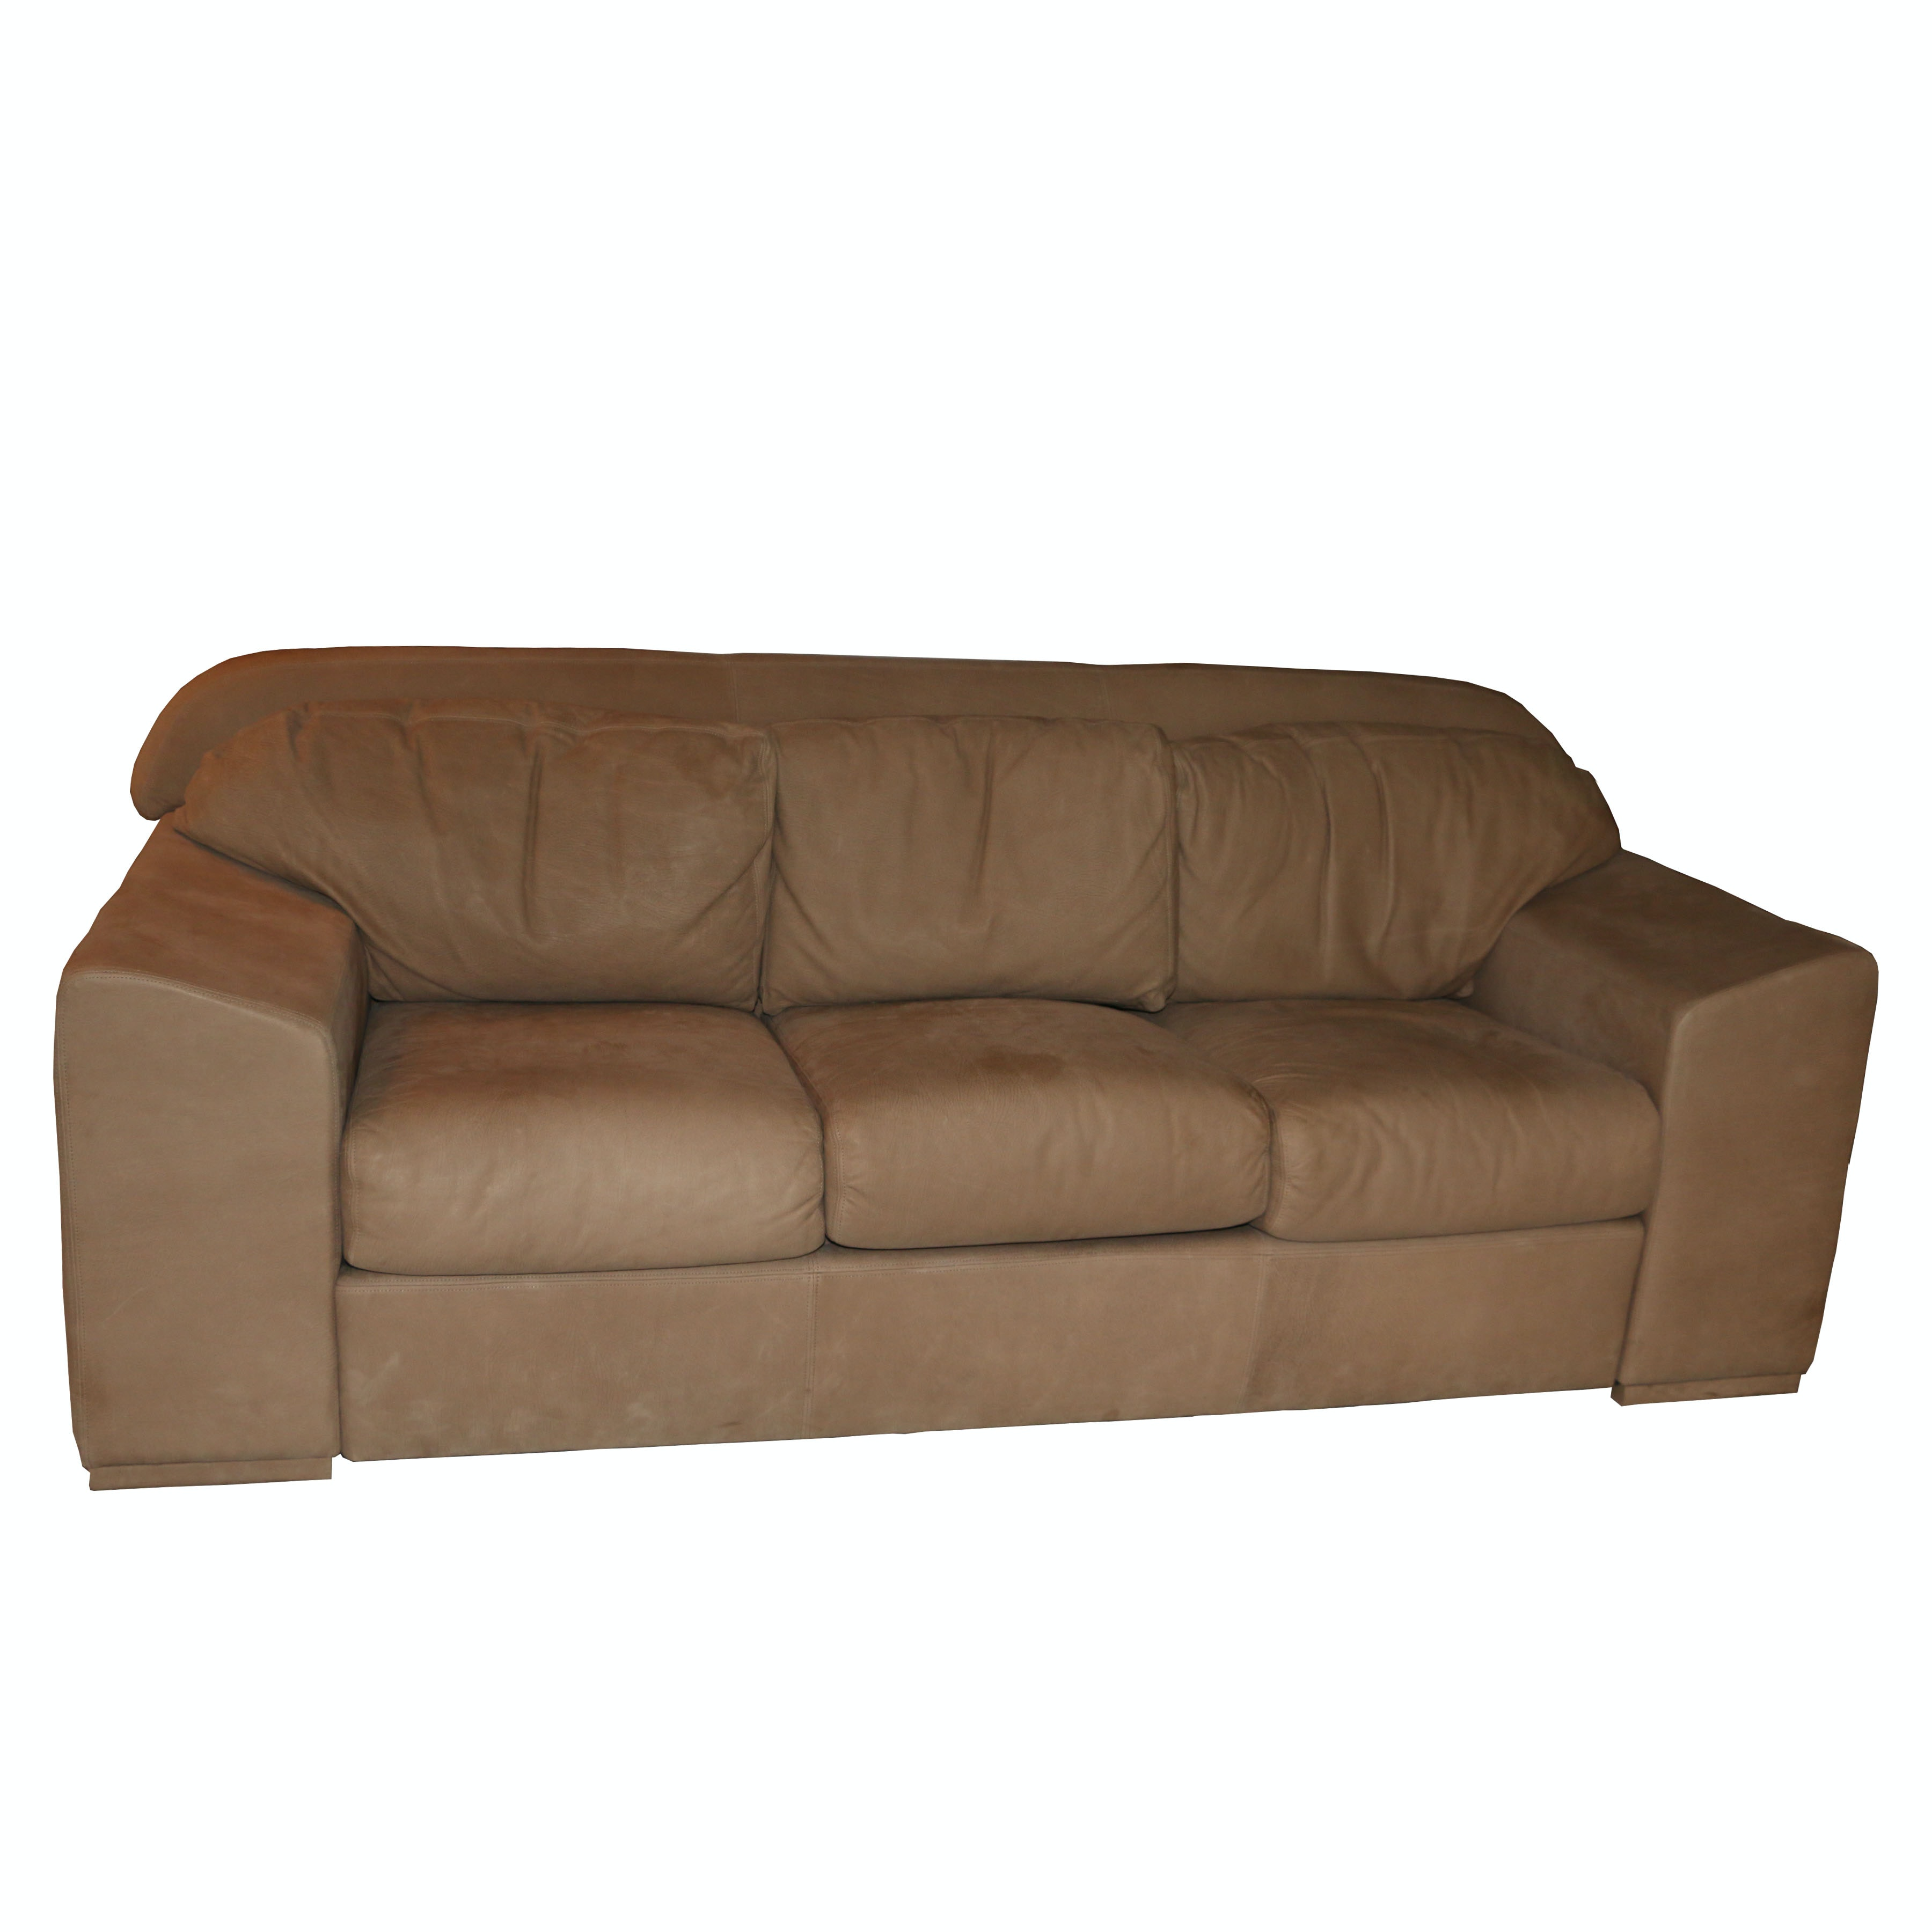 Contemporary Leather Sofa by Leathercract